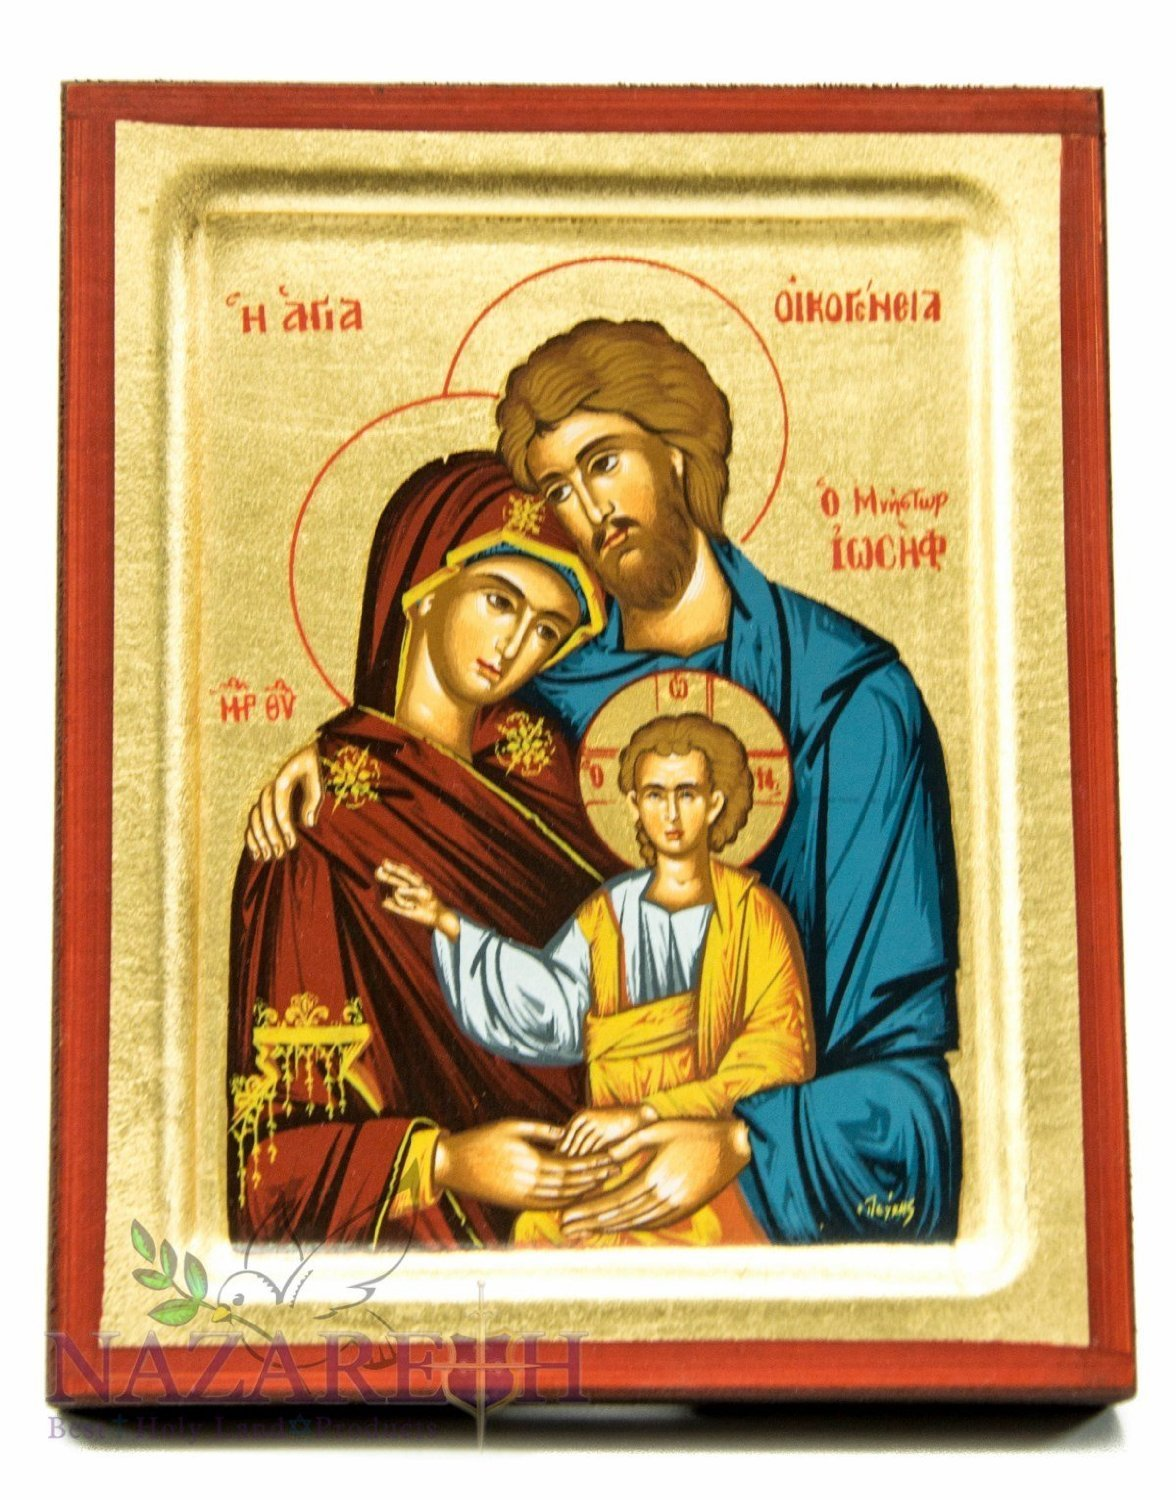 Orthodox Holy Family Wood Icon Handmade Christian Plaque Holy Land by Holy Land Gifts